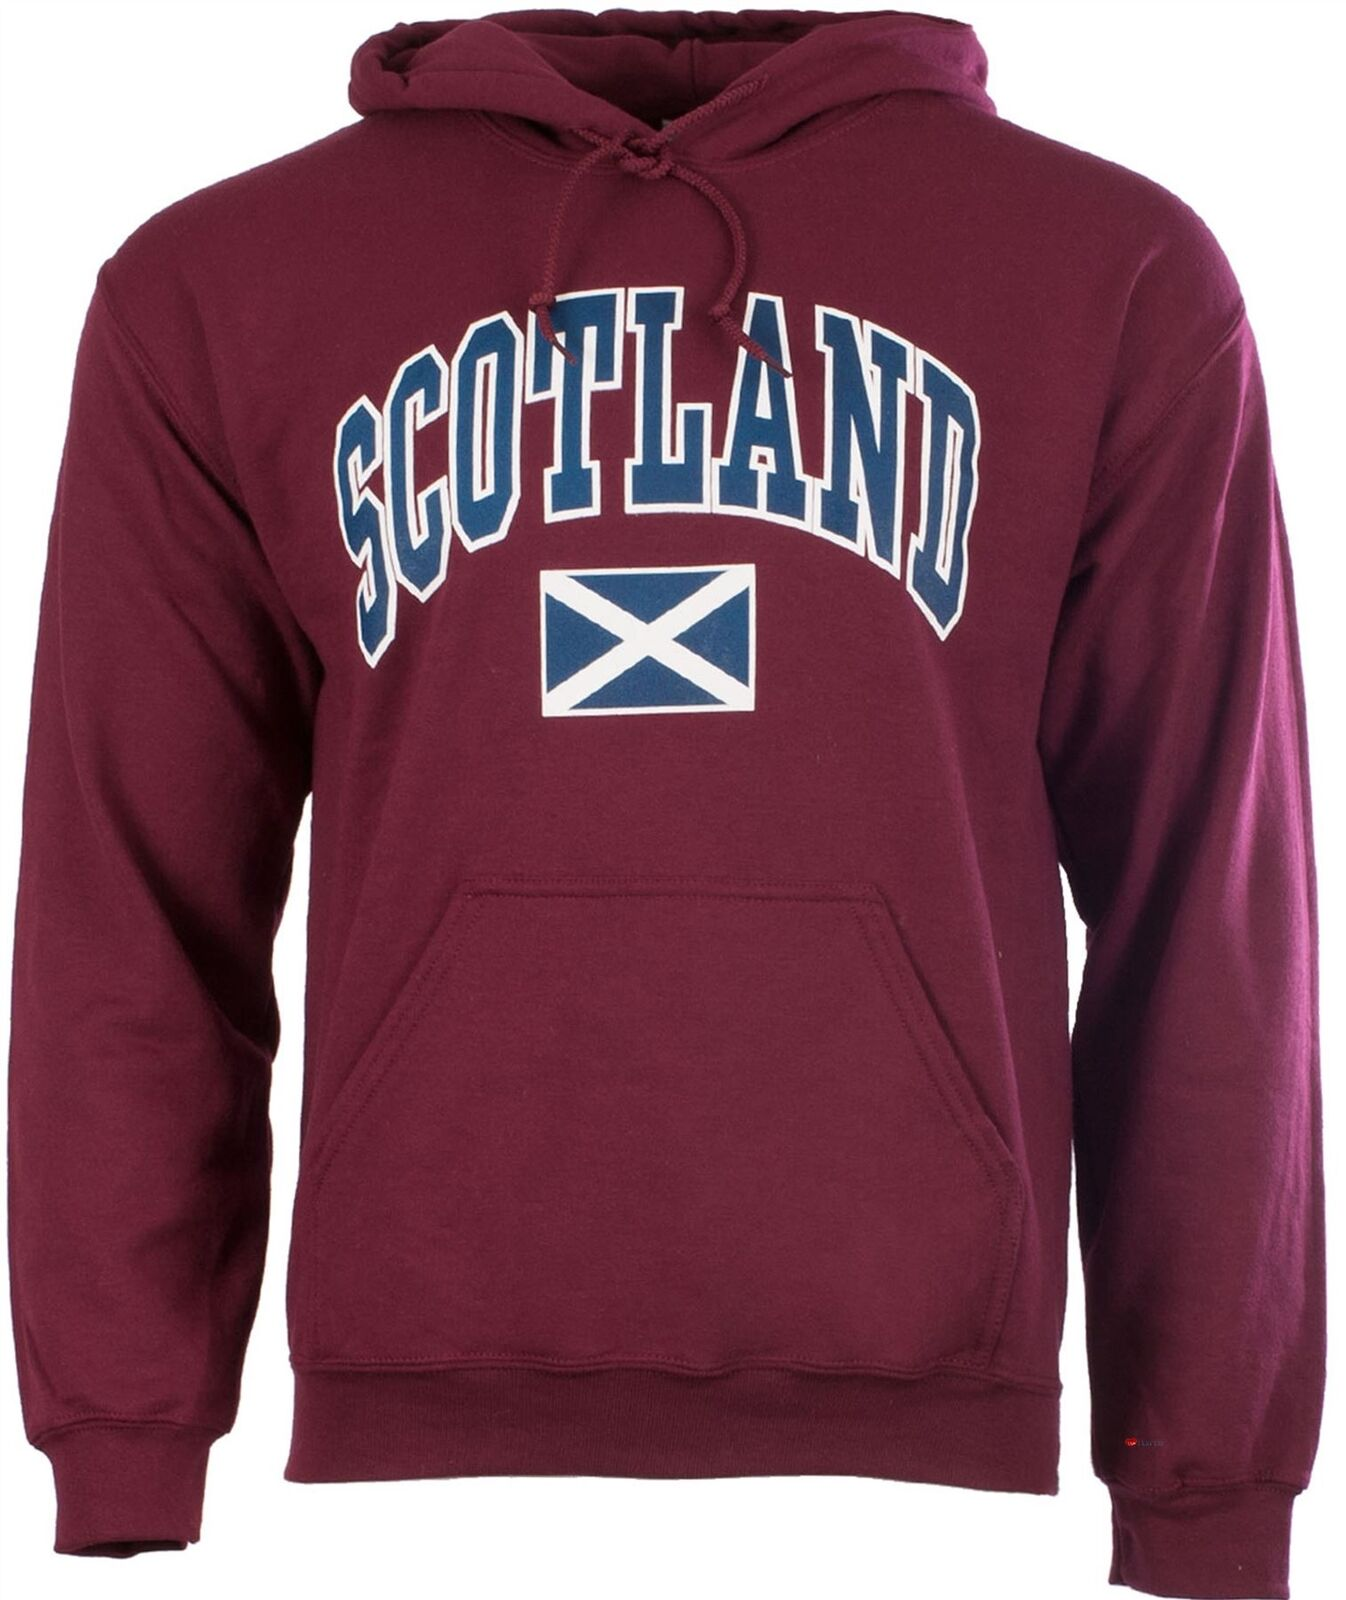 Harvard Style Hooded Jumper With Scotland Text In Maroon Größe 2X-Large